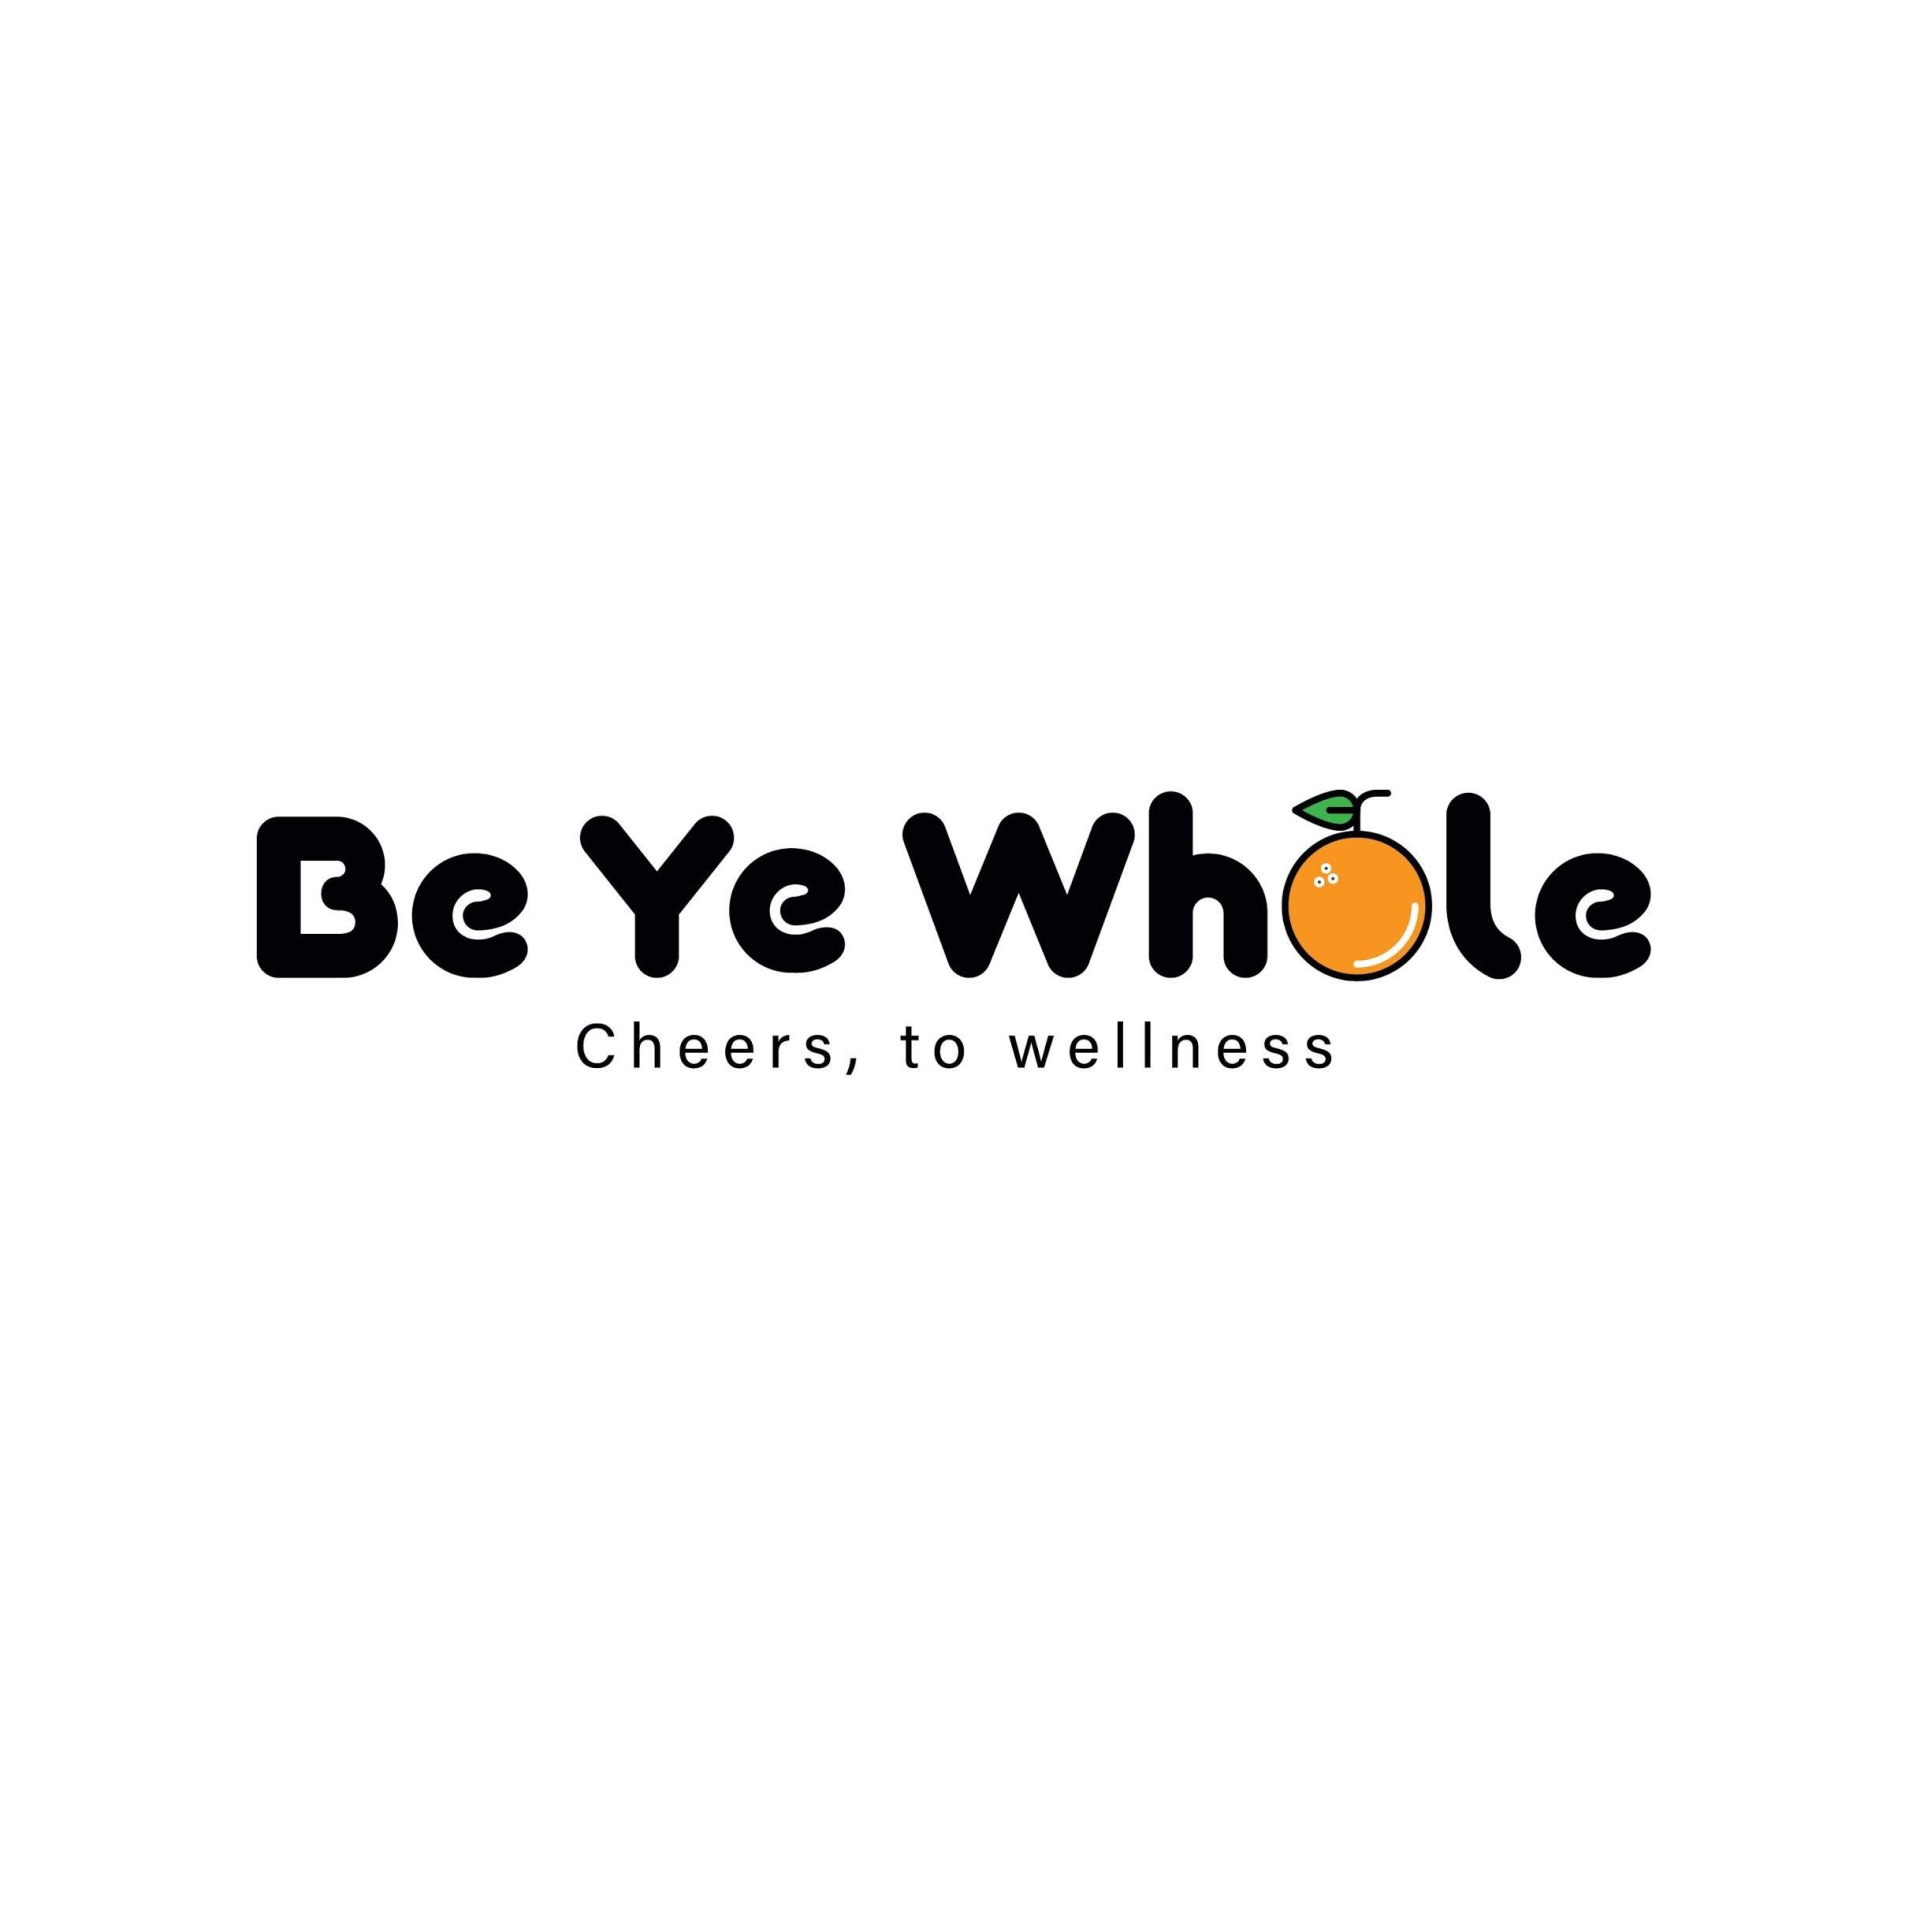 Be Ye Whole